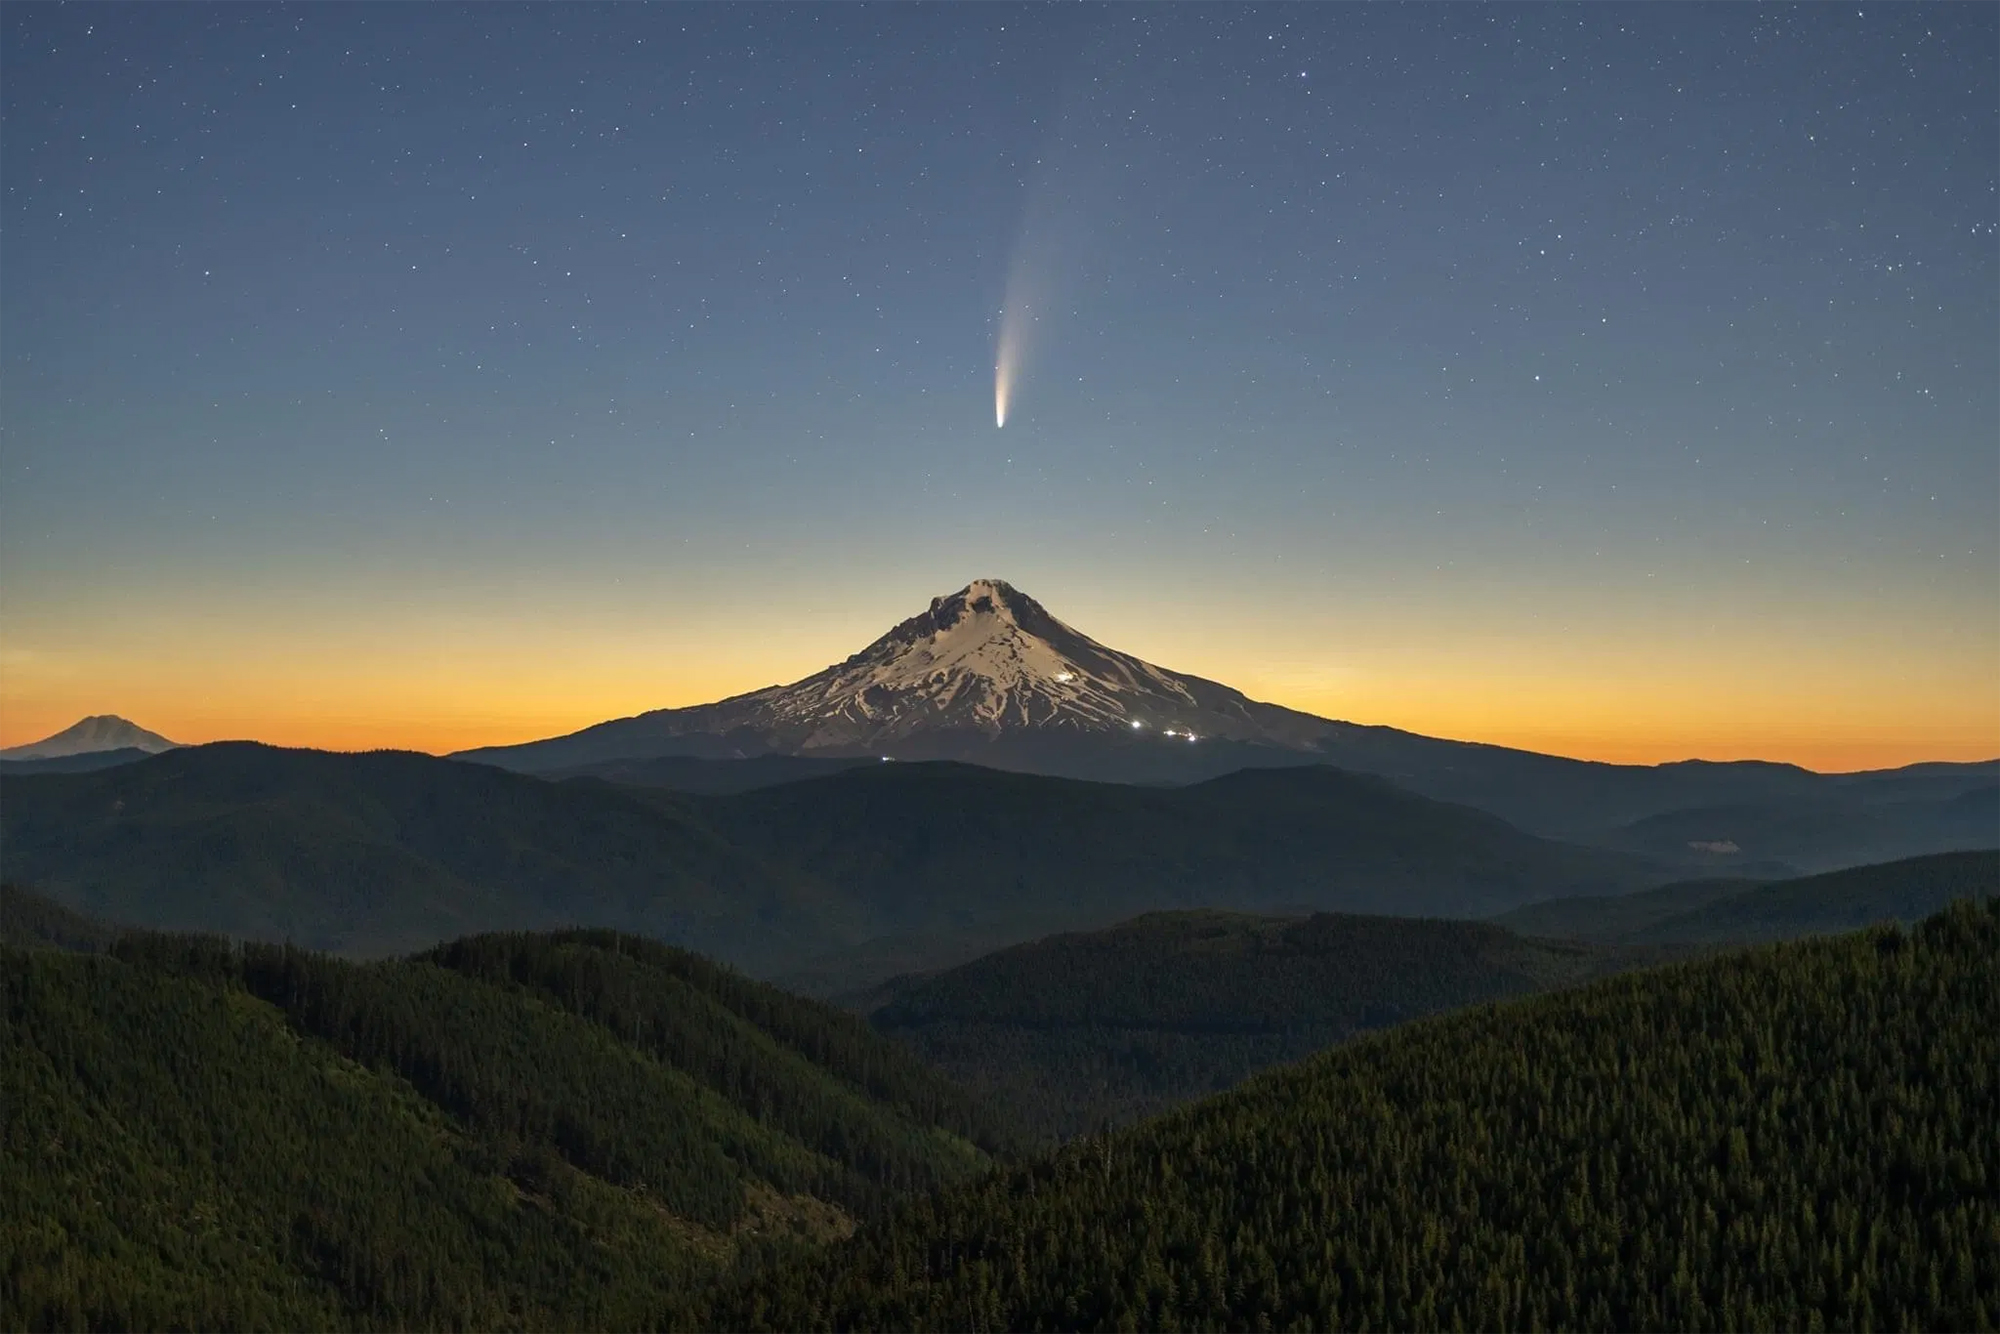 Bright Comet NEOWISE Captured Shooting Above Mount Hood by Photographer Lester Tsai